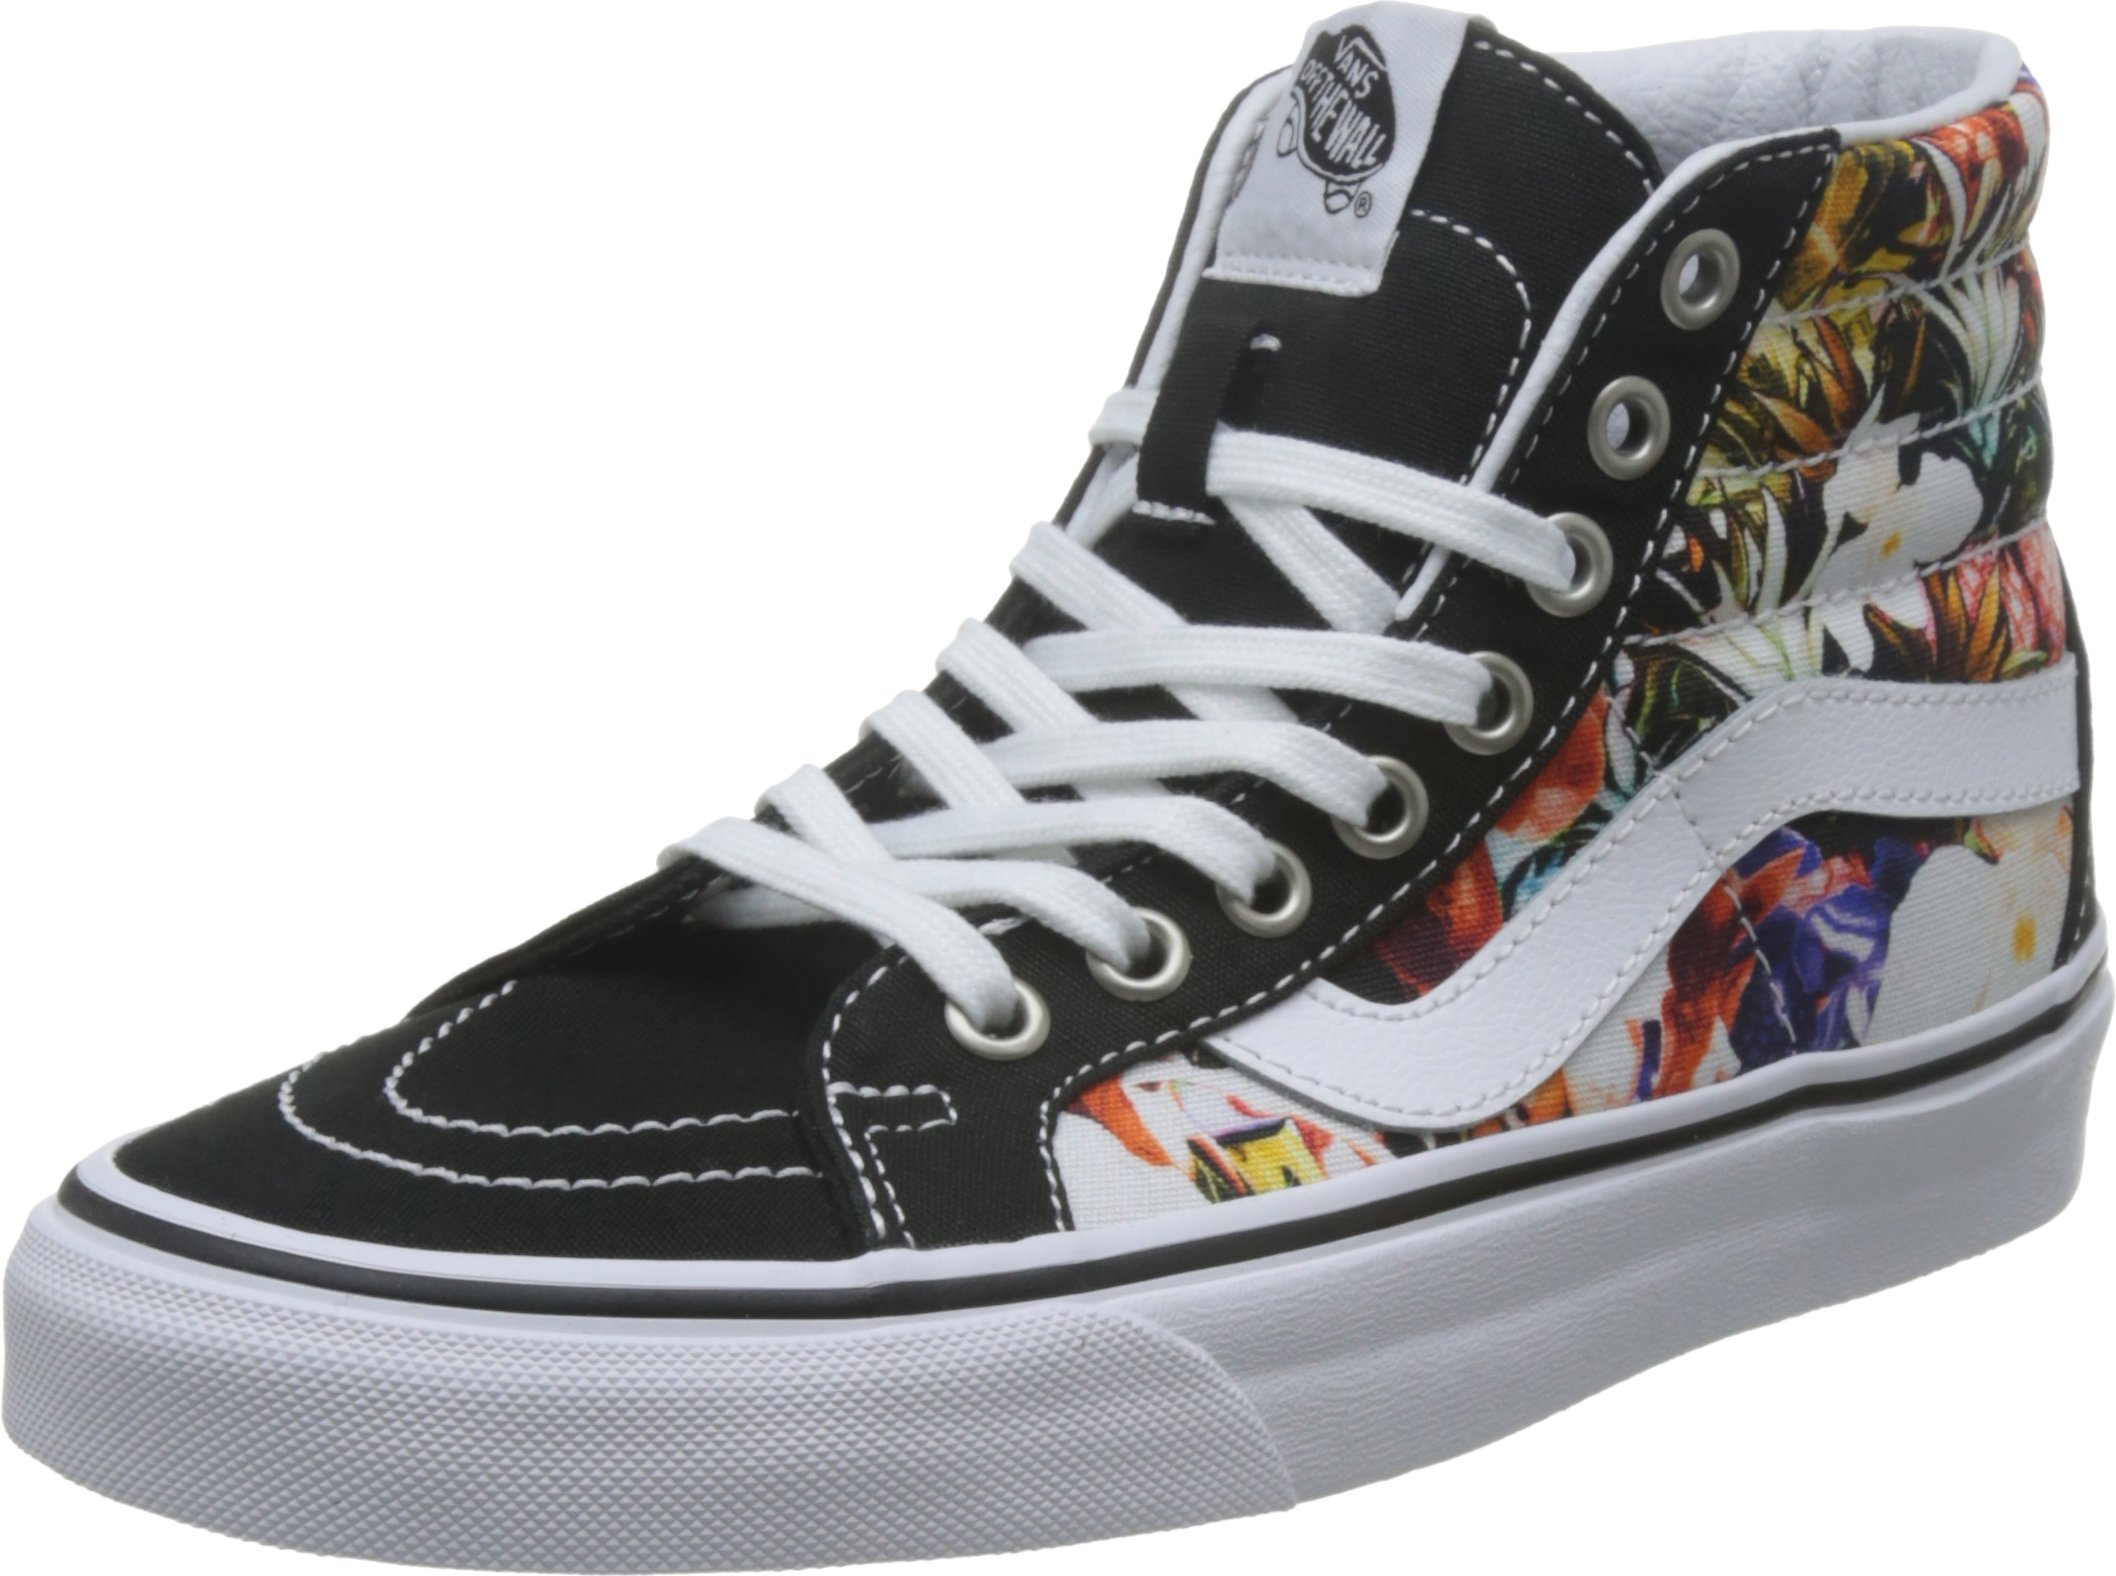 3c3baa96293 Galleon - Vans Mens SK8 HI Reissue Shoes Cuban Floral Black True White Size  5.5